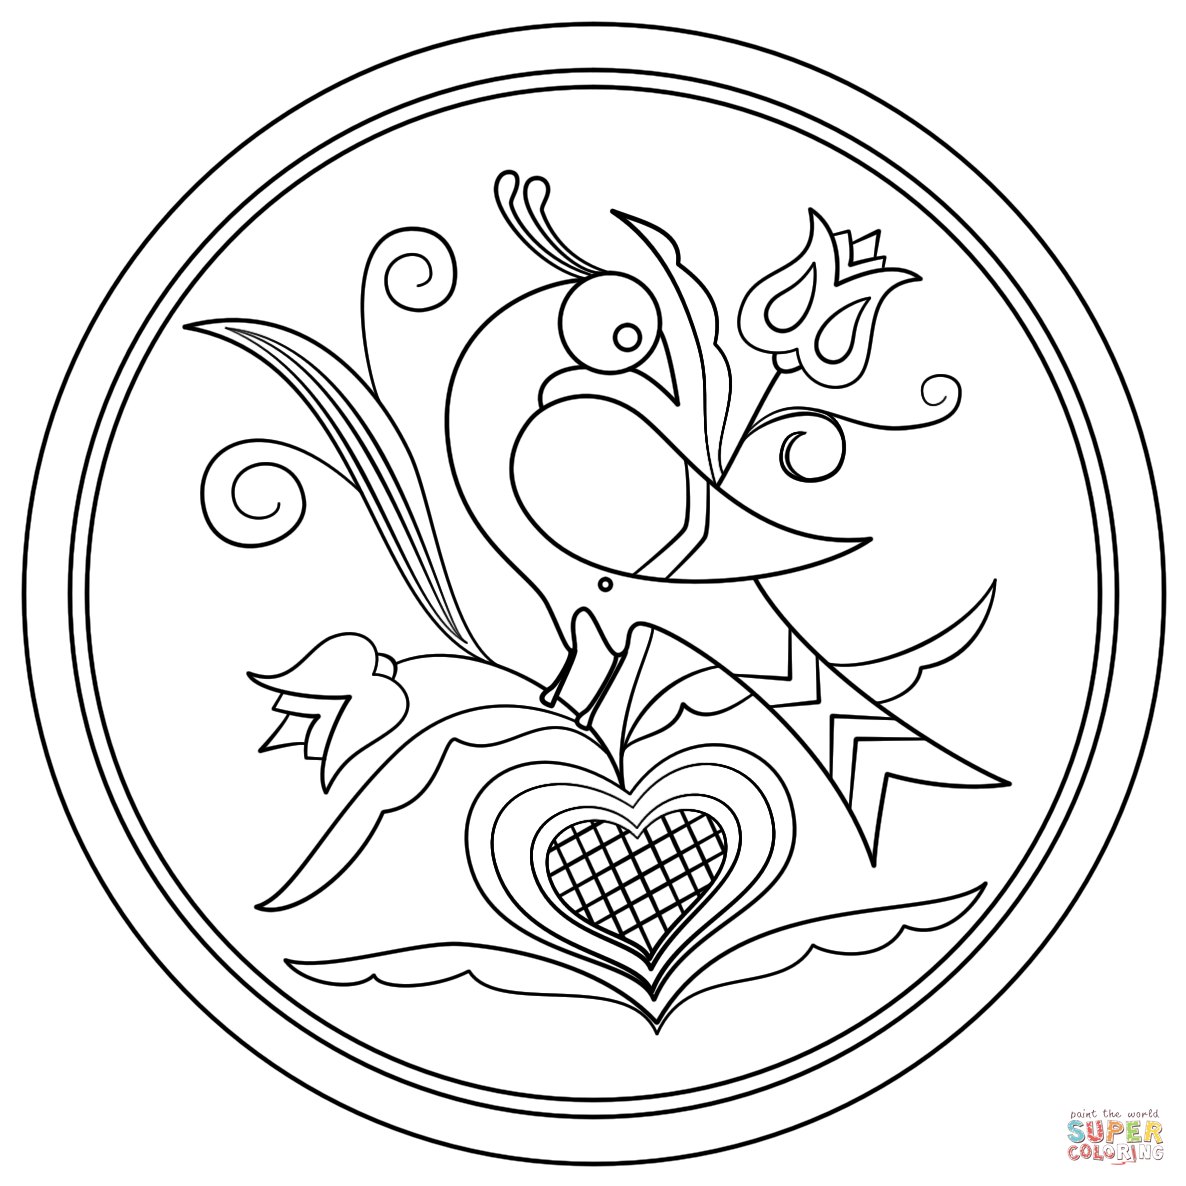 1186x1186 Pennsylvania Dutch Art Coloring Pages Free